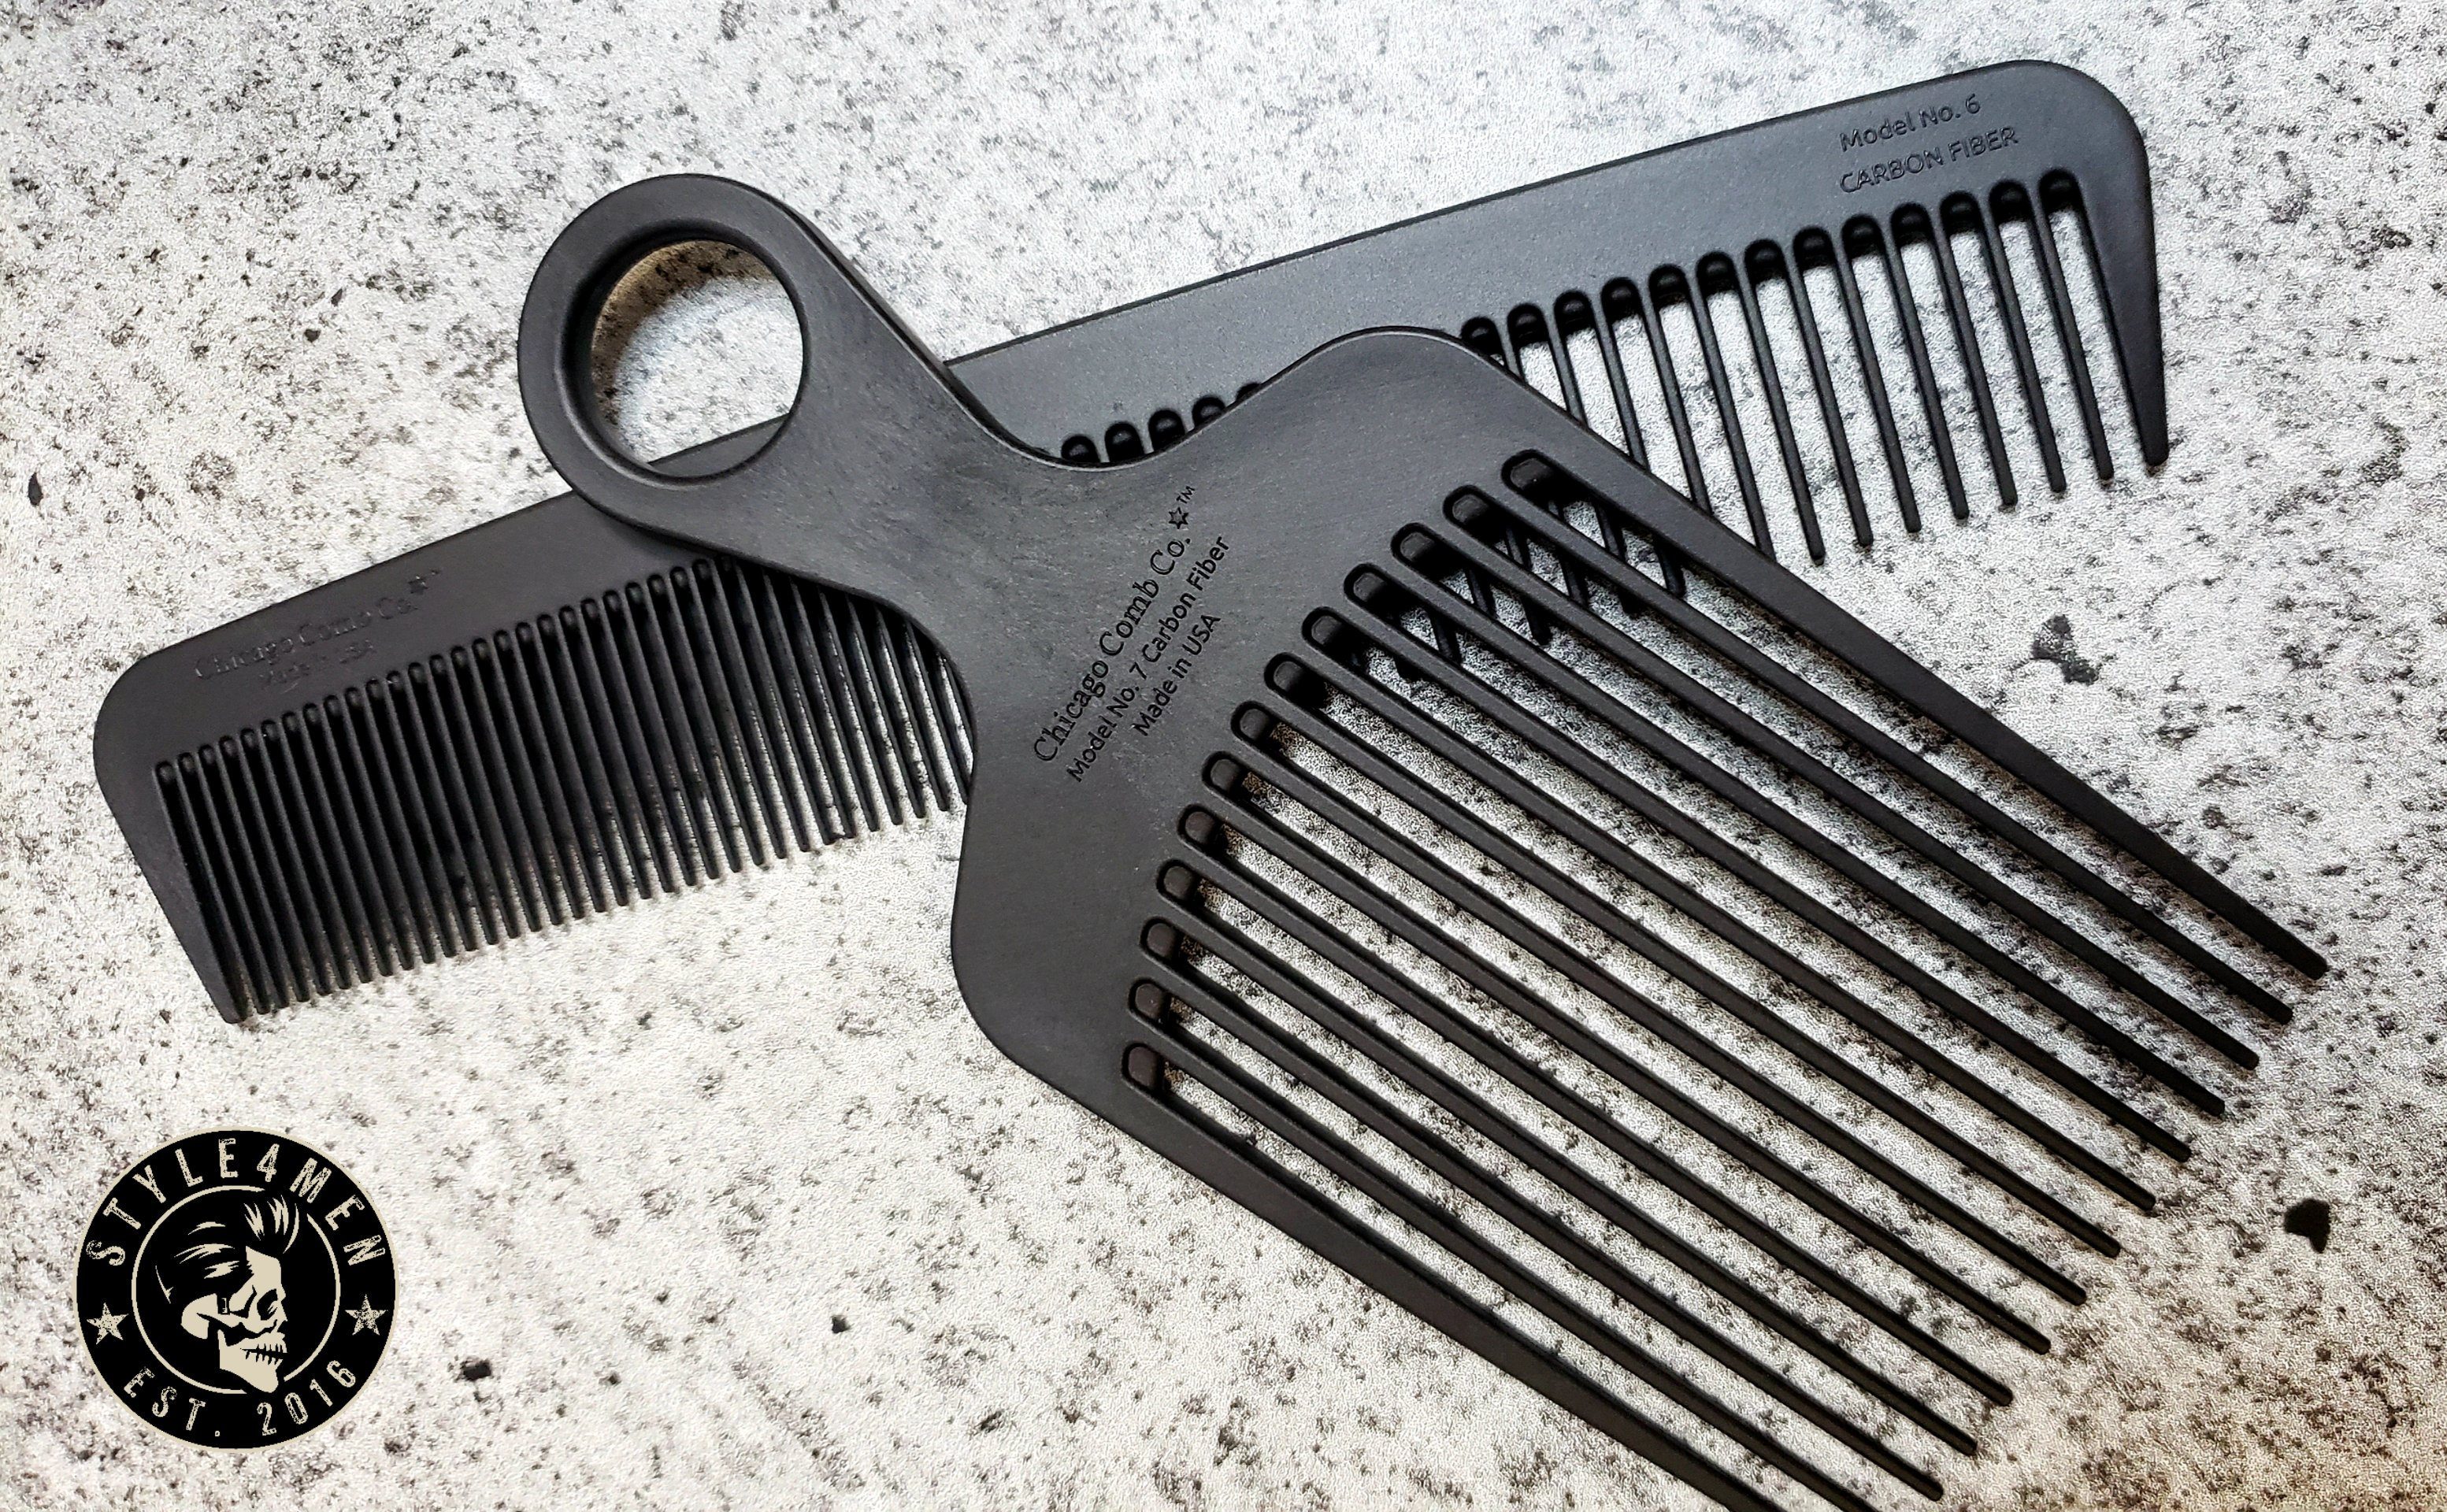 Chicago Comb Co – The comb you didn't know you needed